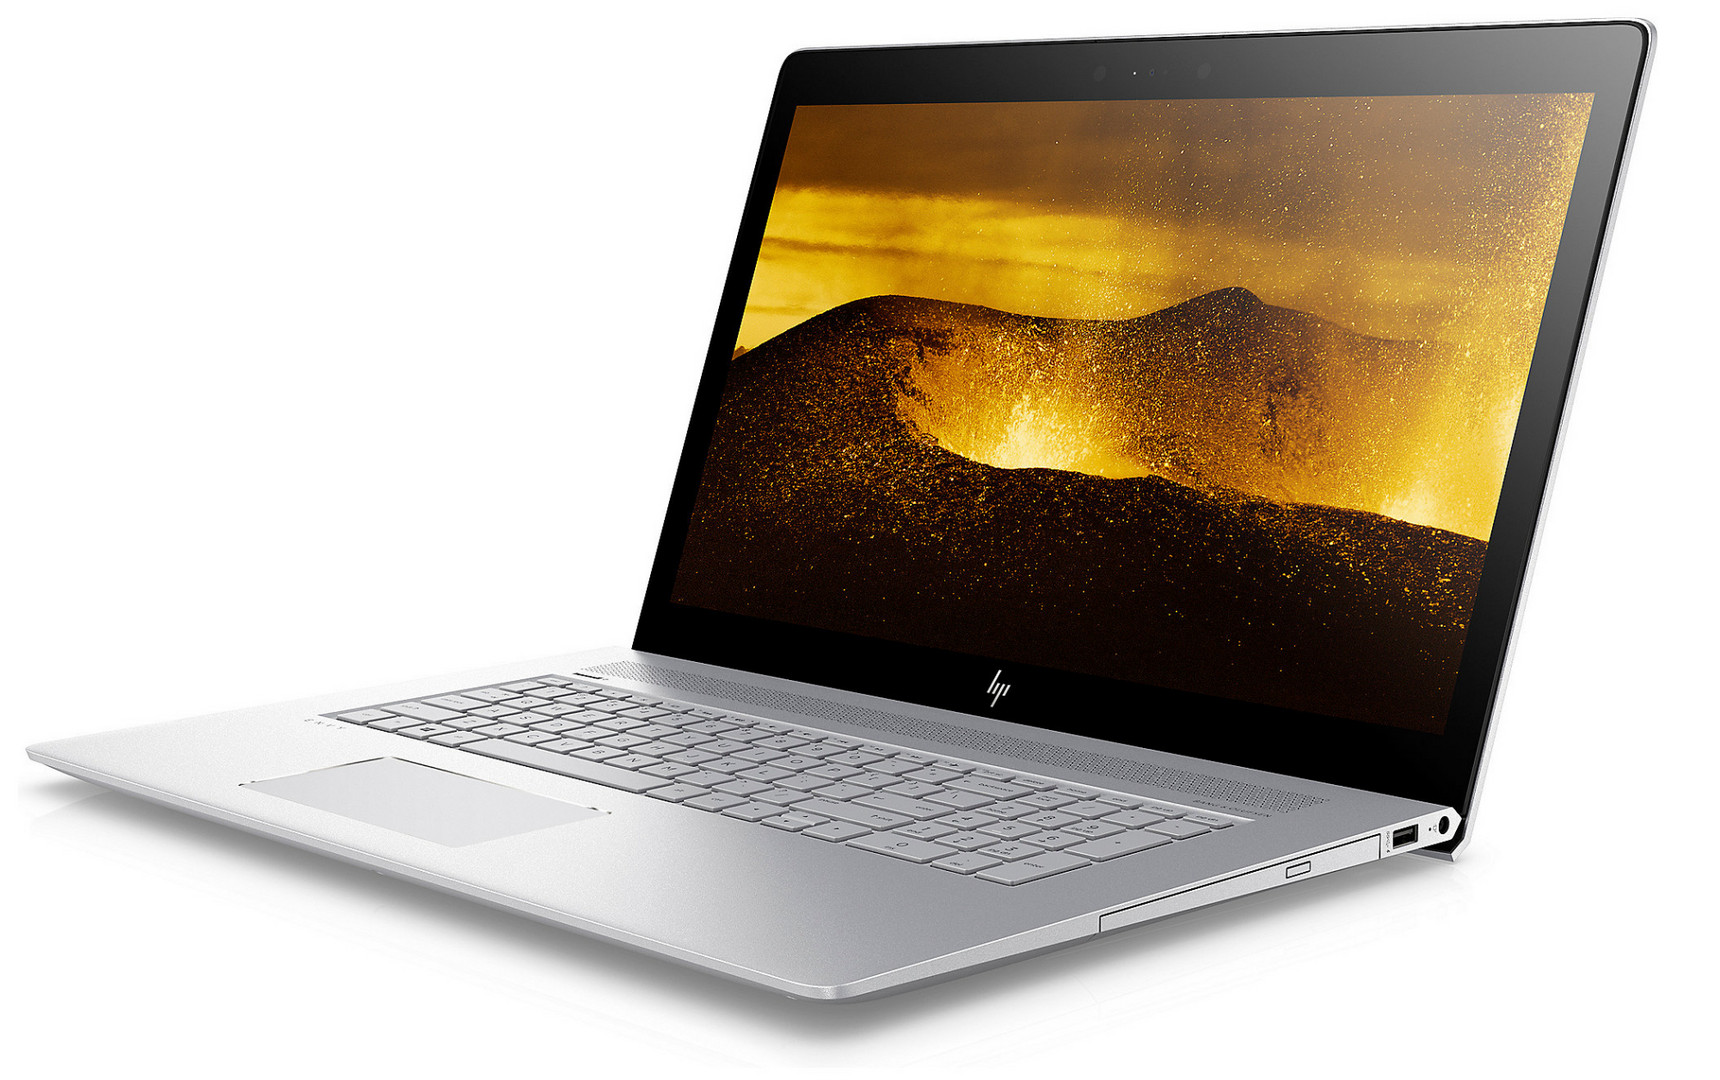 Hp Envy 17 I5 8250u Mx150 Ssd Fhd Laptop Review Notebookcheck Pc Fan Speed Controller 8211 For A Low Noise Full Resolution